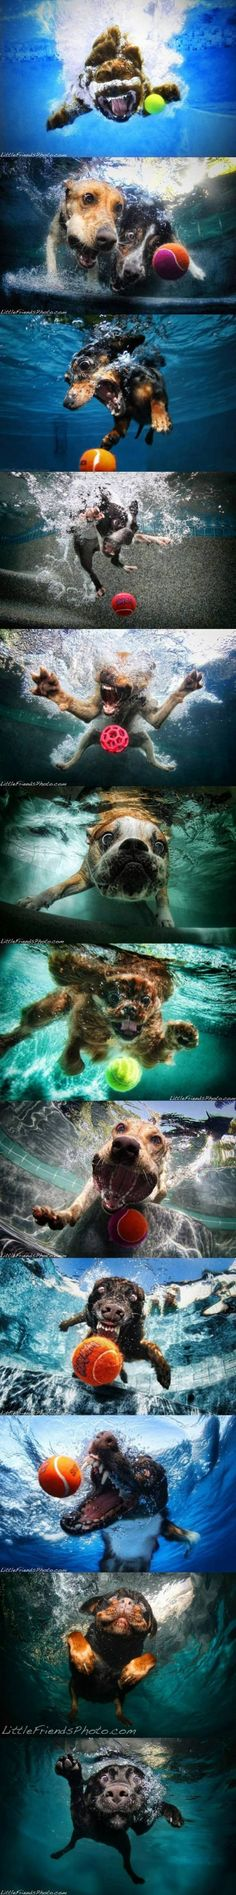 underwater shots of dogs fetching in pools